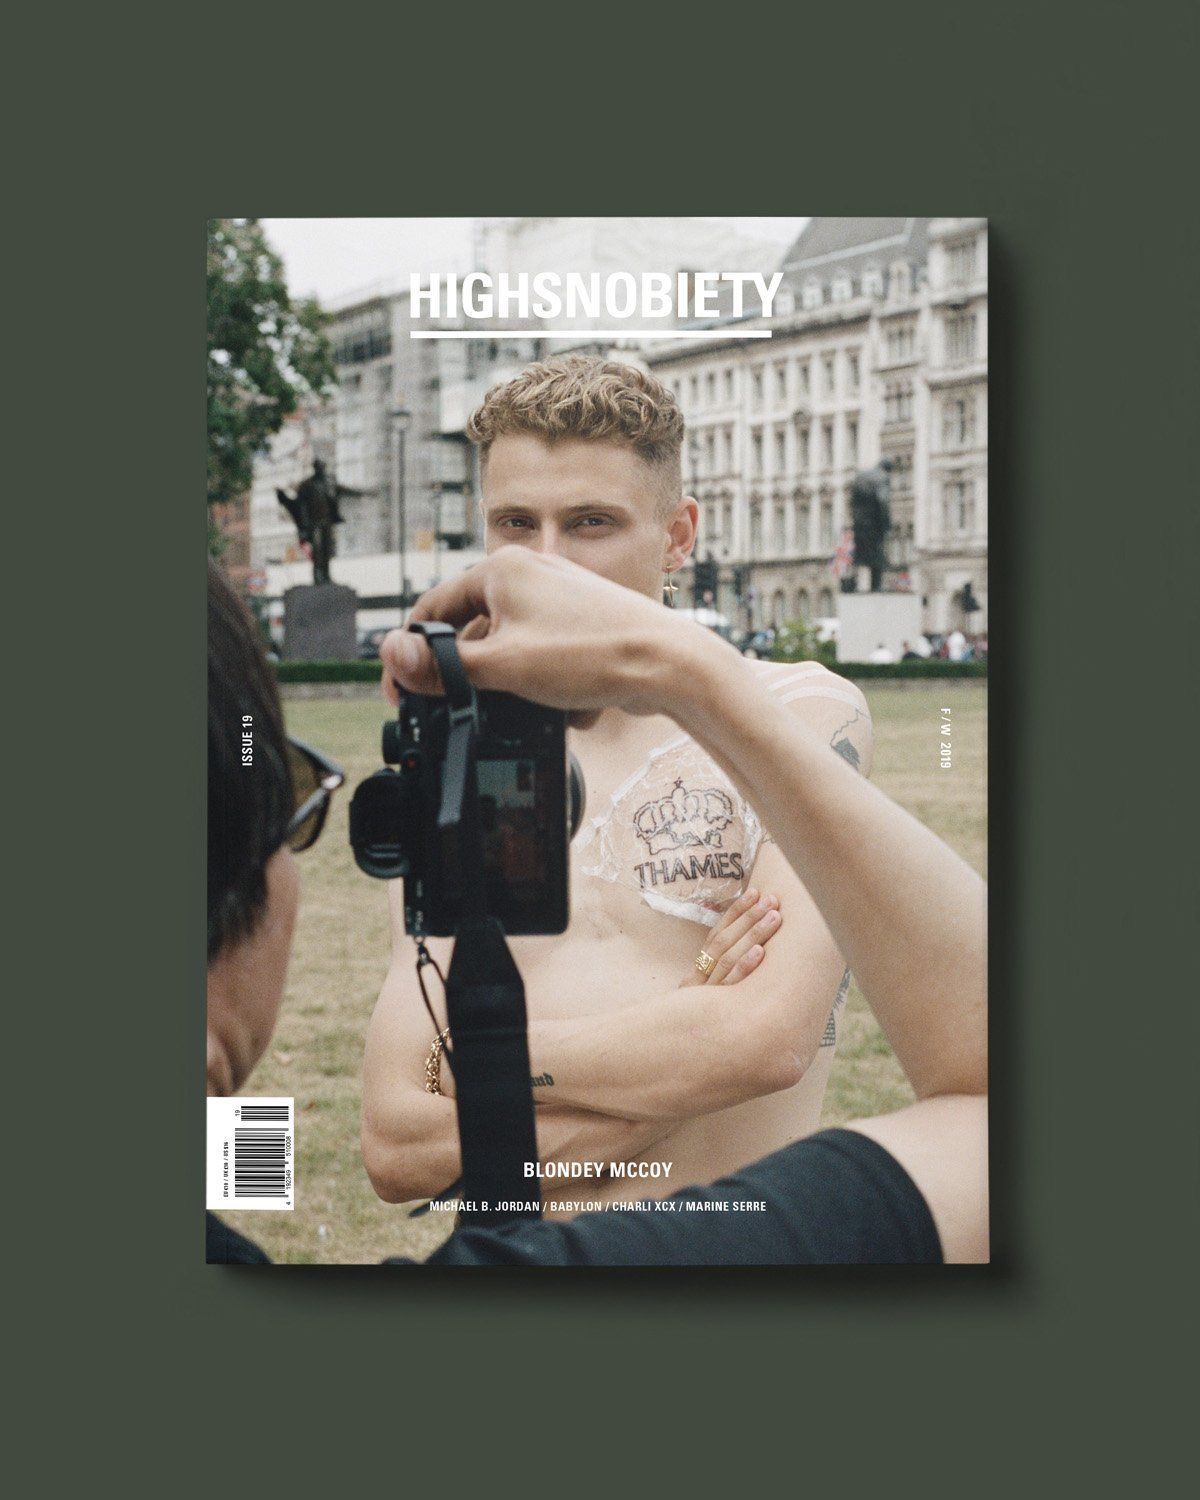 Highsnobiety Magazine Issue 19: Blondey Edition - Image 1